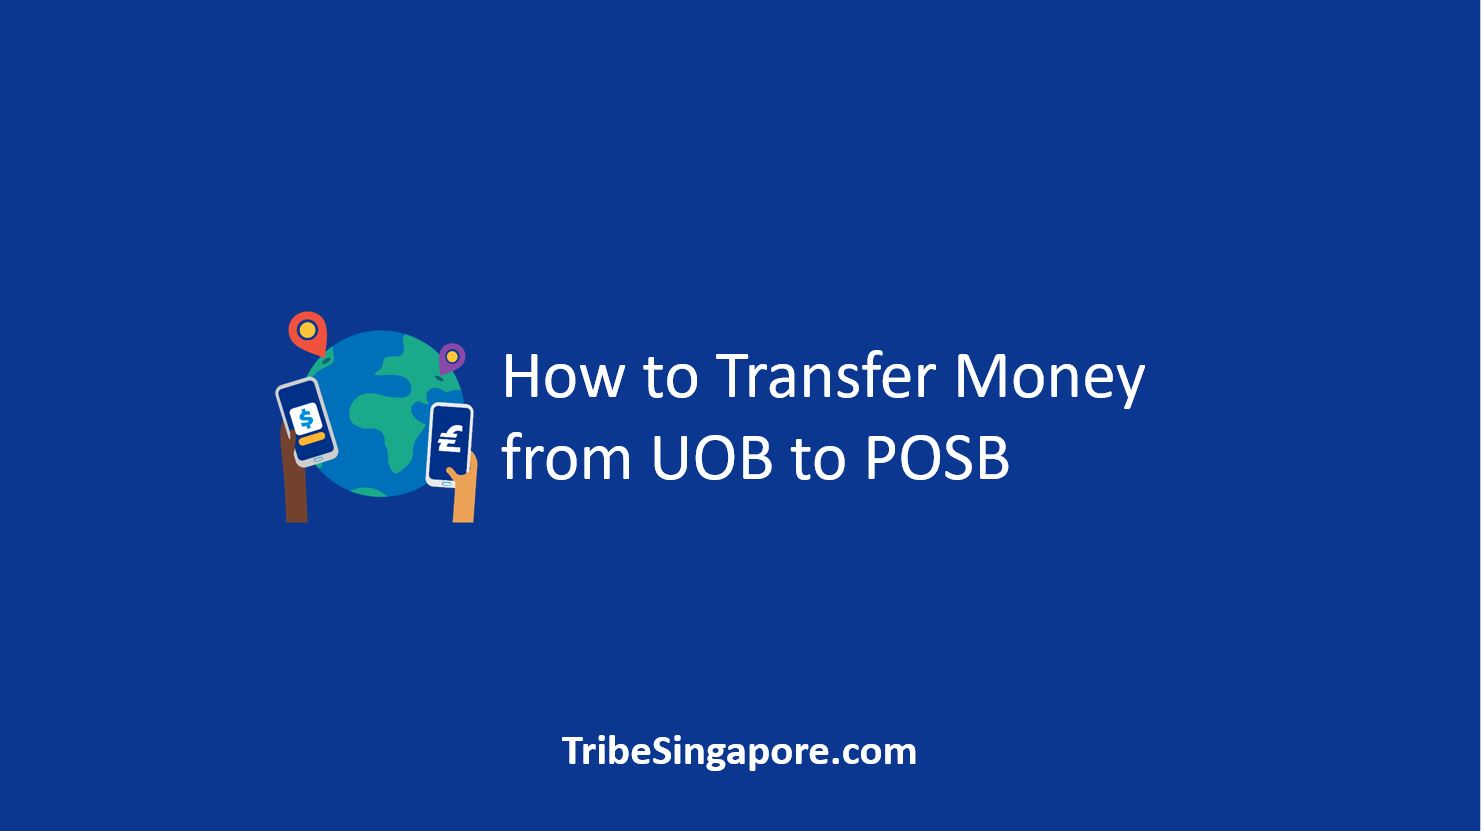 How to Transfer Money from UOB to POSB